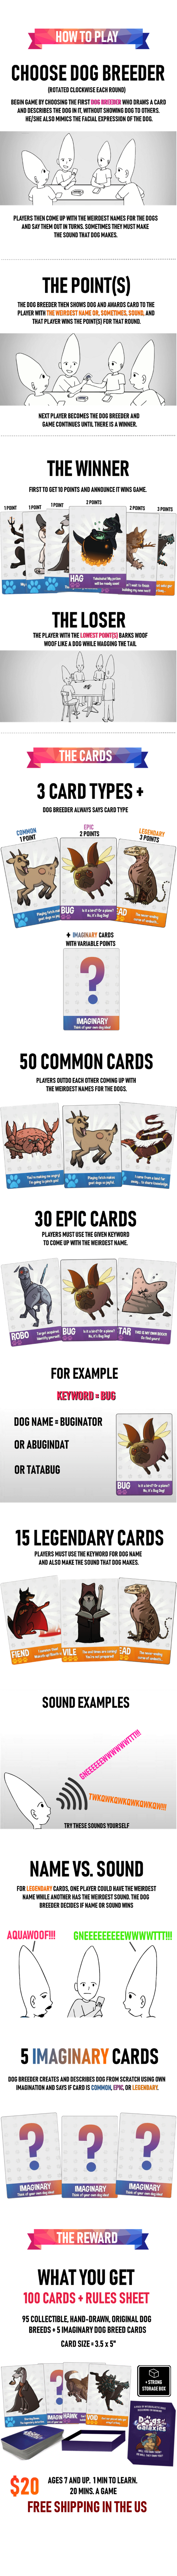 Dogs of the Galaxies - A Card Game About Intergalactic Dogs